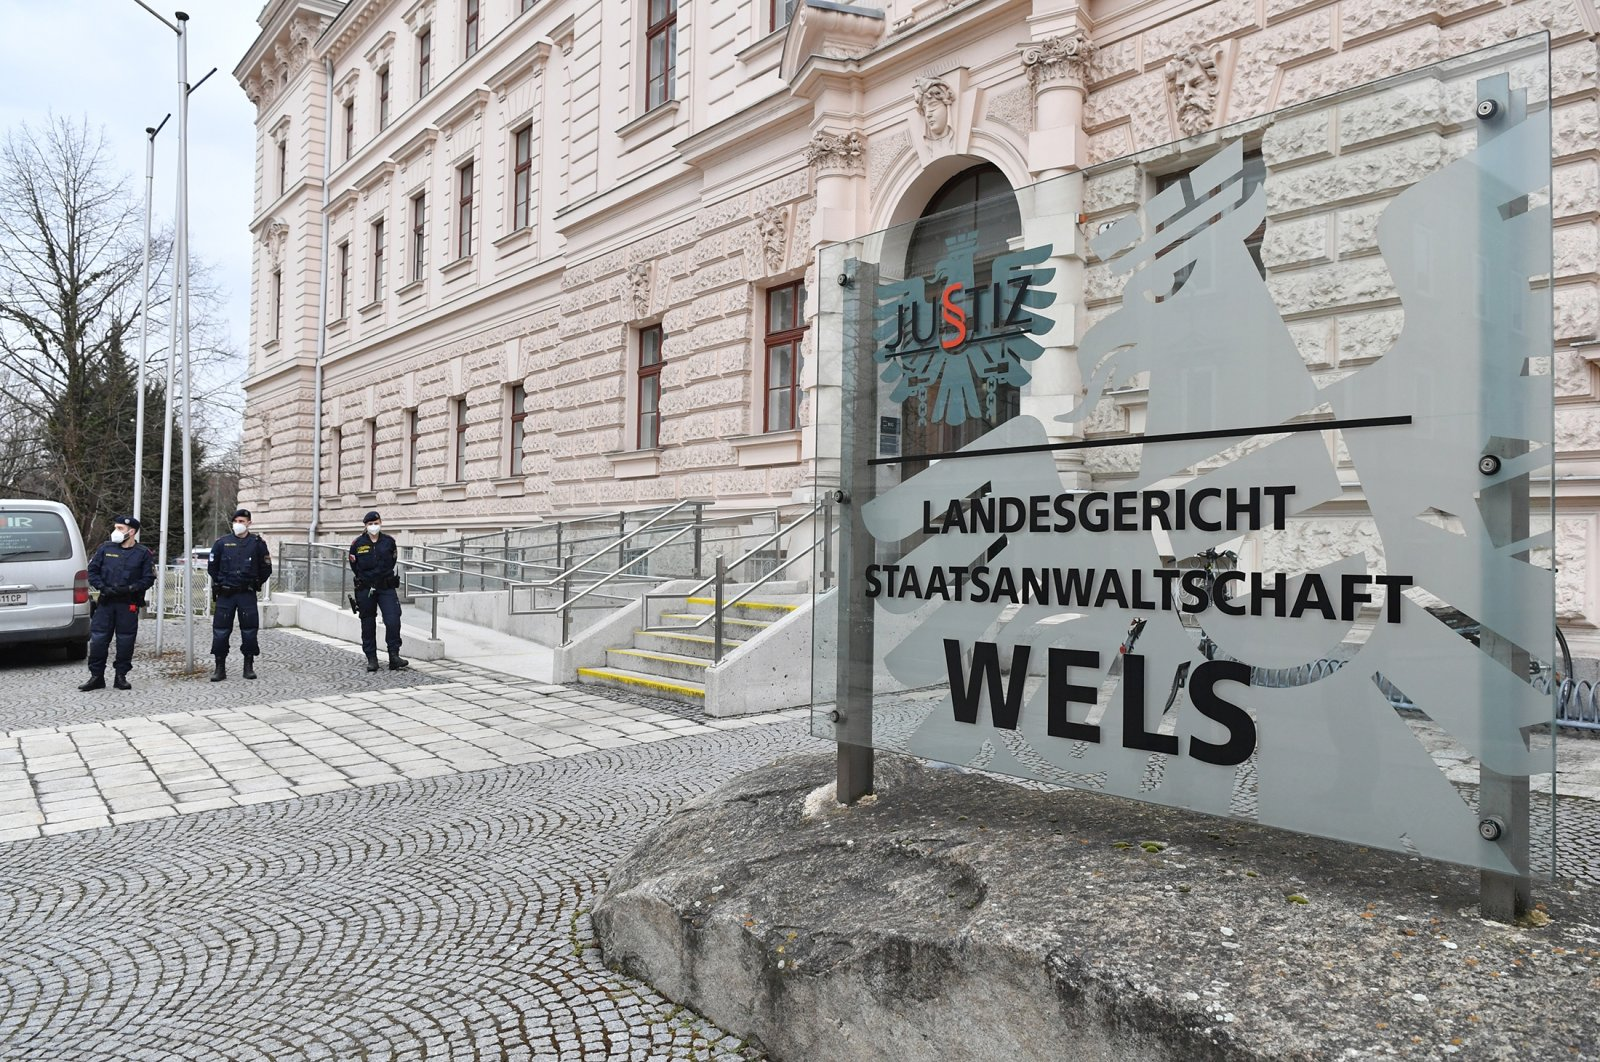 Outside view of the Regional Court Wels on March 23, 2021 in Wels, Austria. (Getty Images)